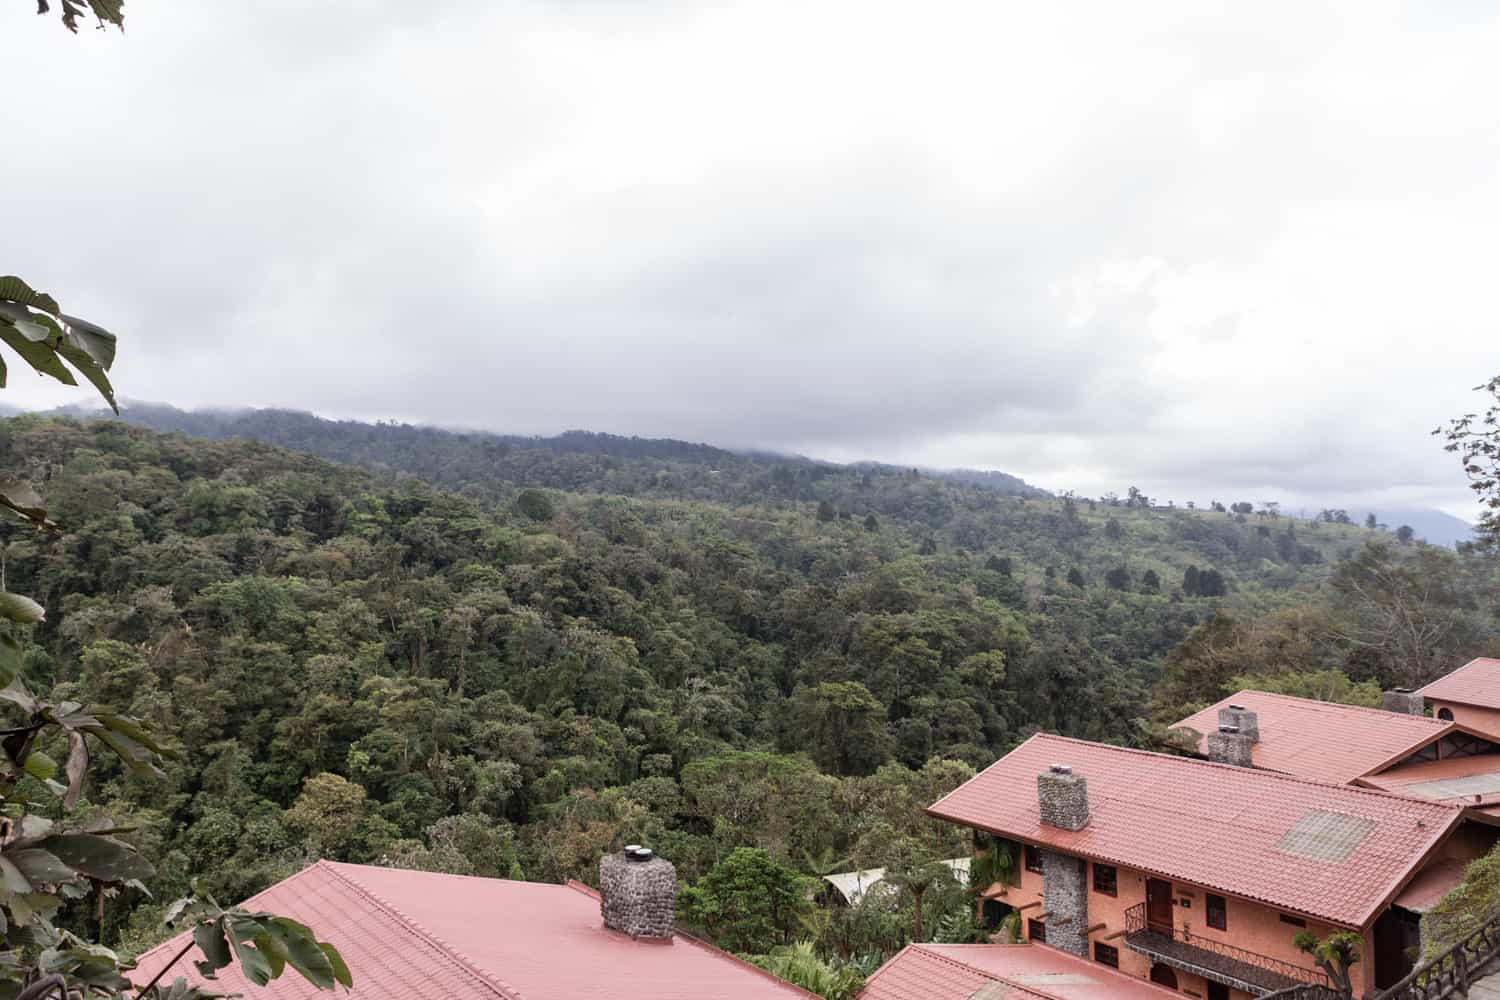 Peace Lodge rooms for wedding guests on hillside surrounded by cloud forest.